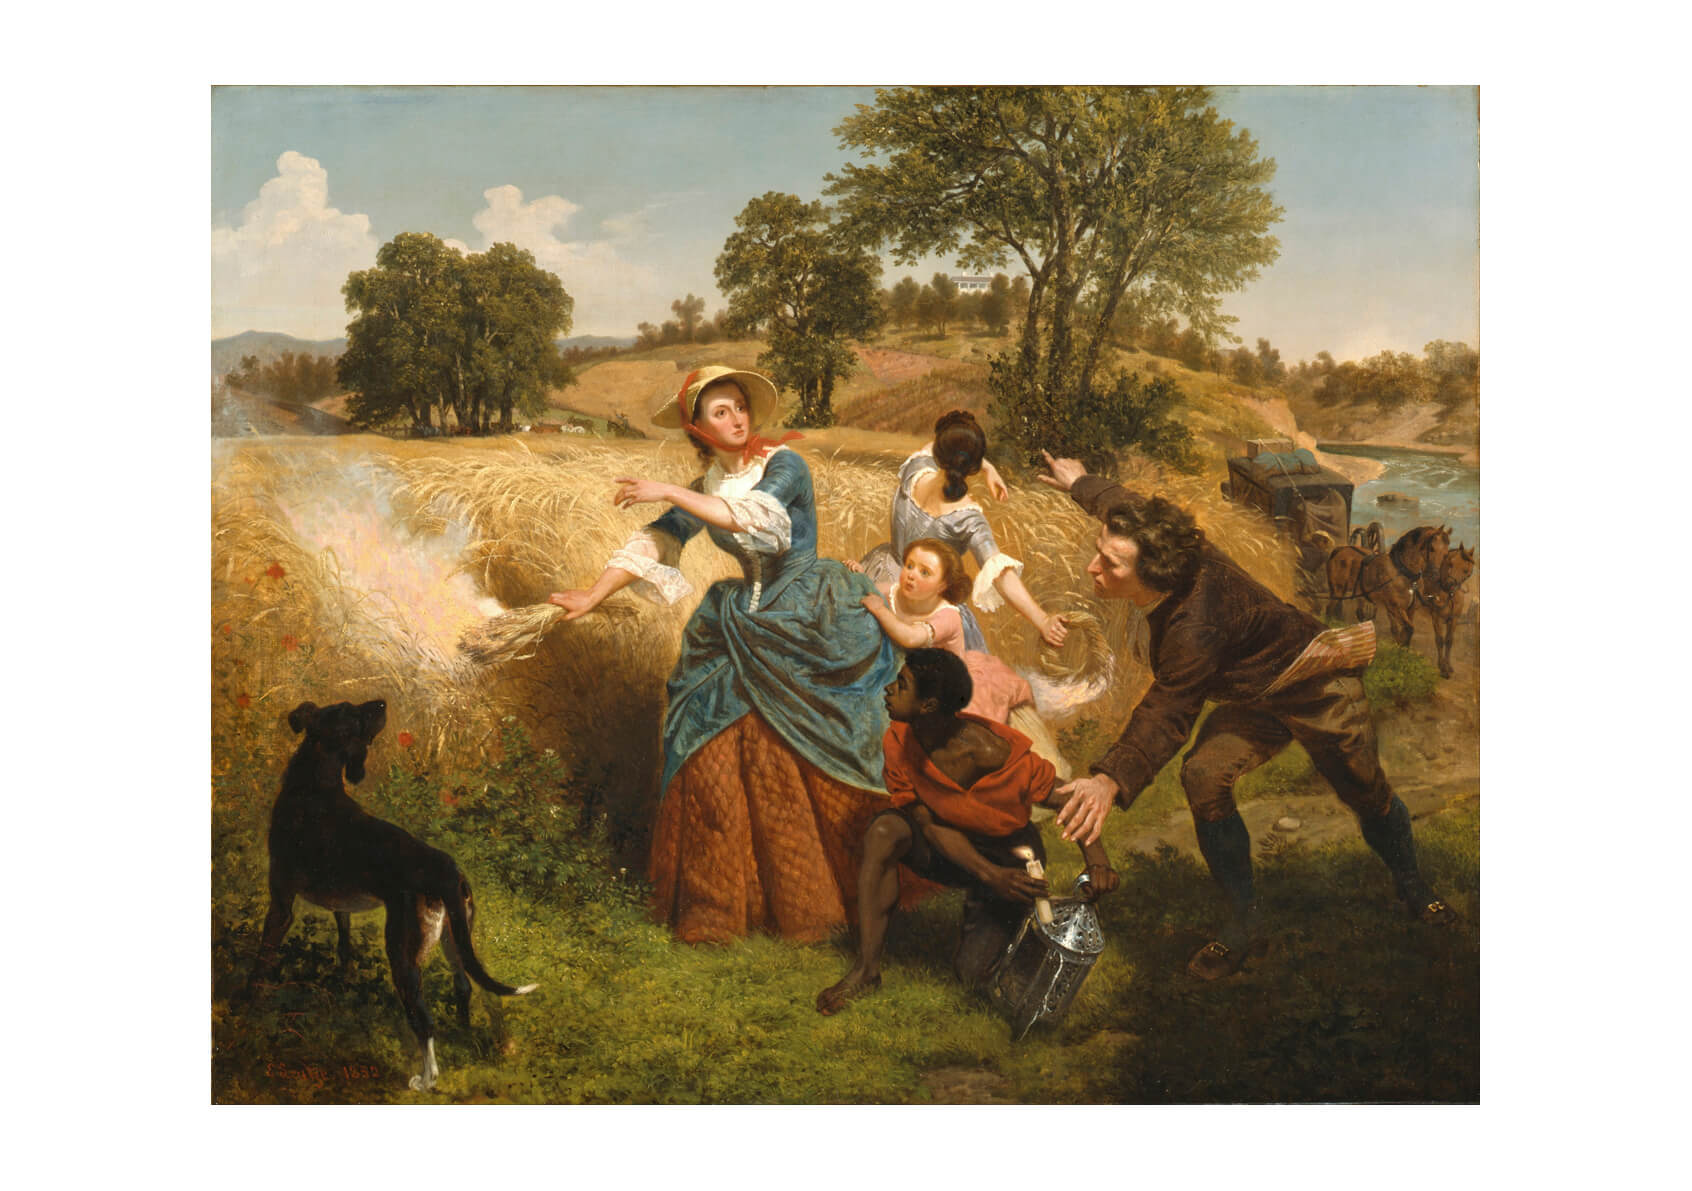 Emanuel Leutz - Mrs. Schuyler Burning Her Wheat Fields on the Approach of the British